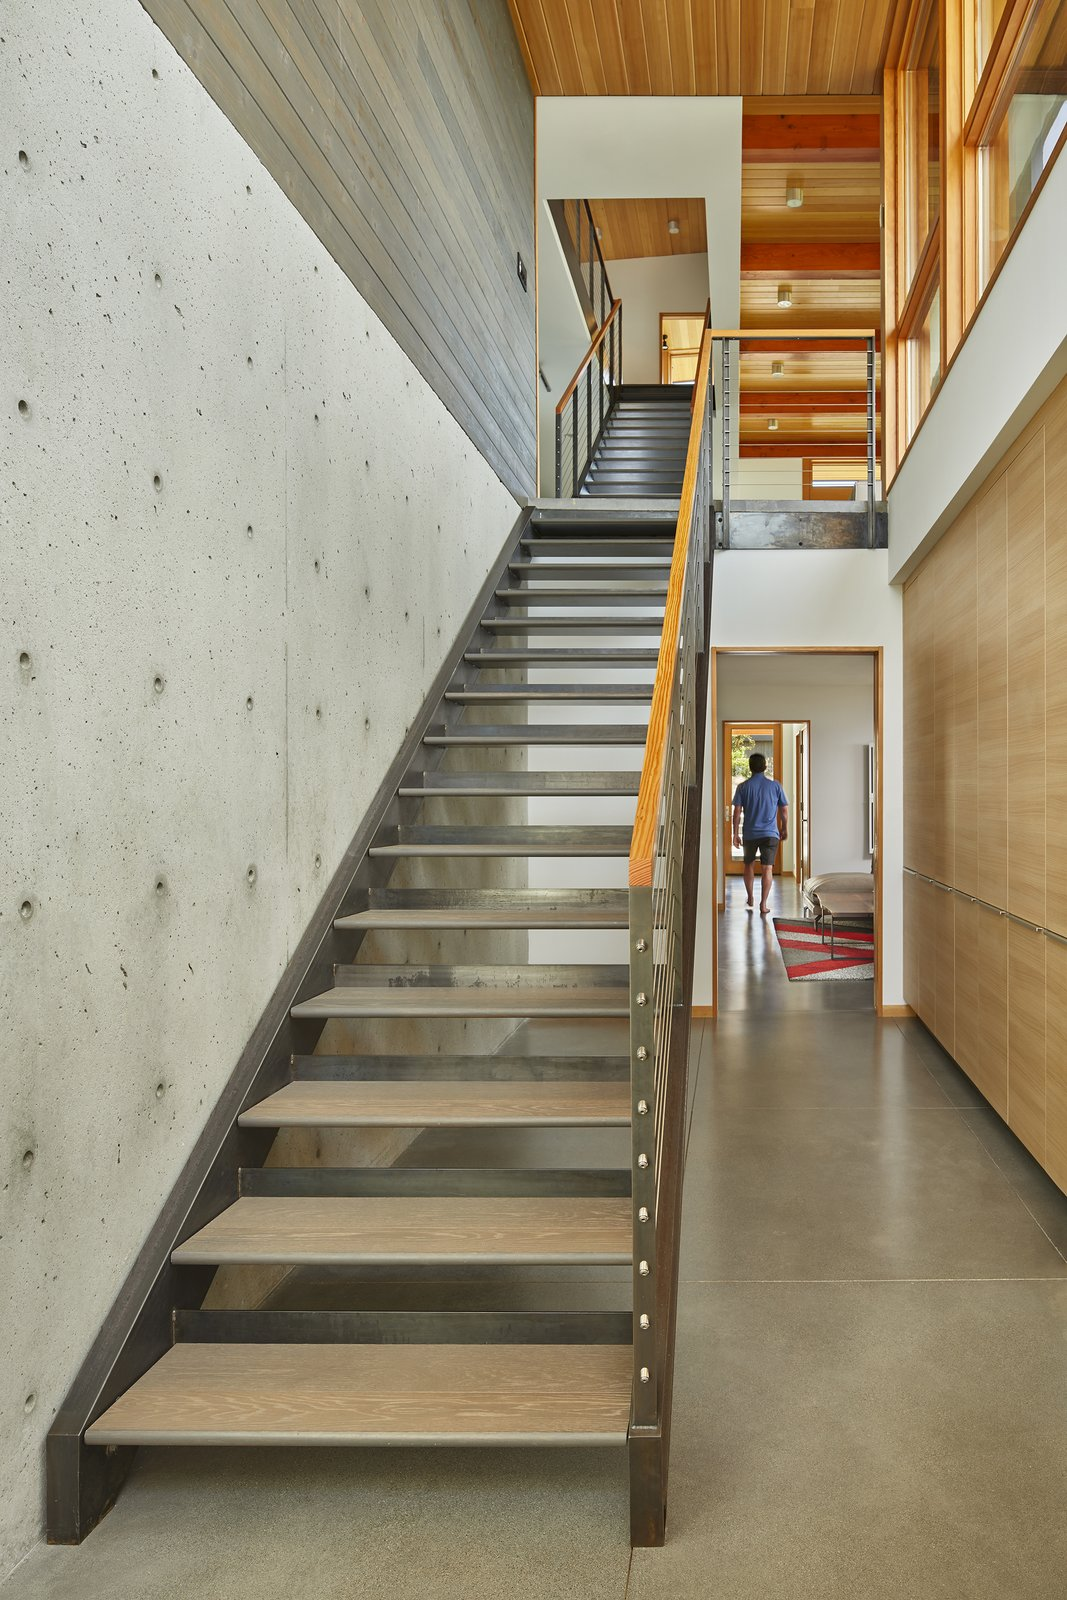 Tagged: Staircase, Wood Tread, Metal Tread, and Metal Railing.  Issaquah Highlands Residence by Studio Zerbey Architecture